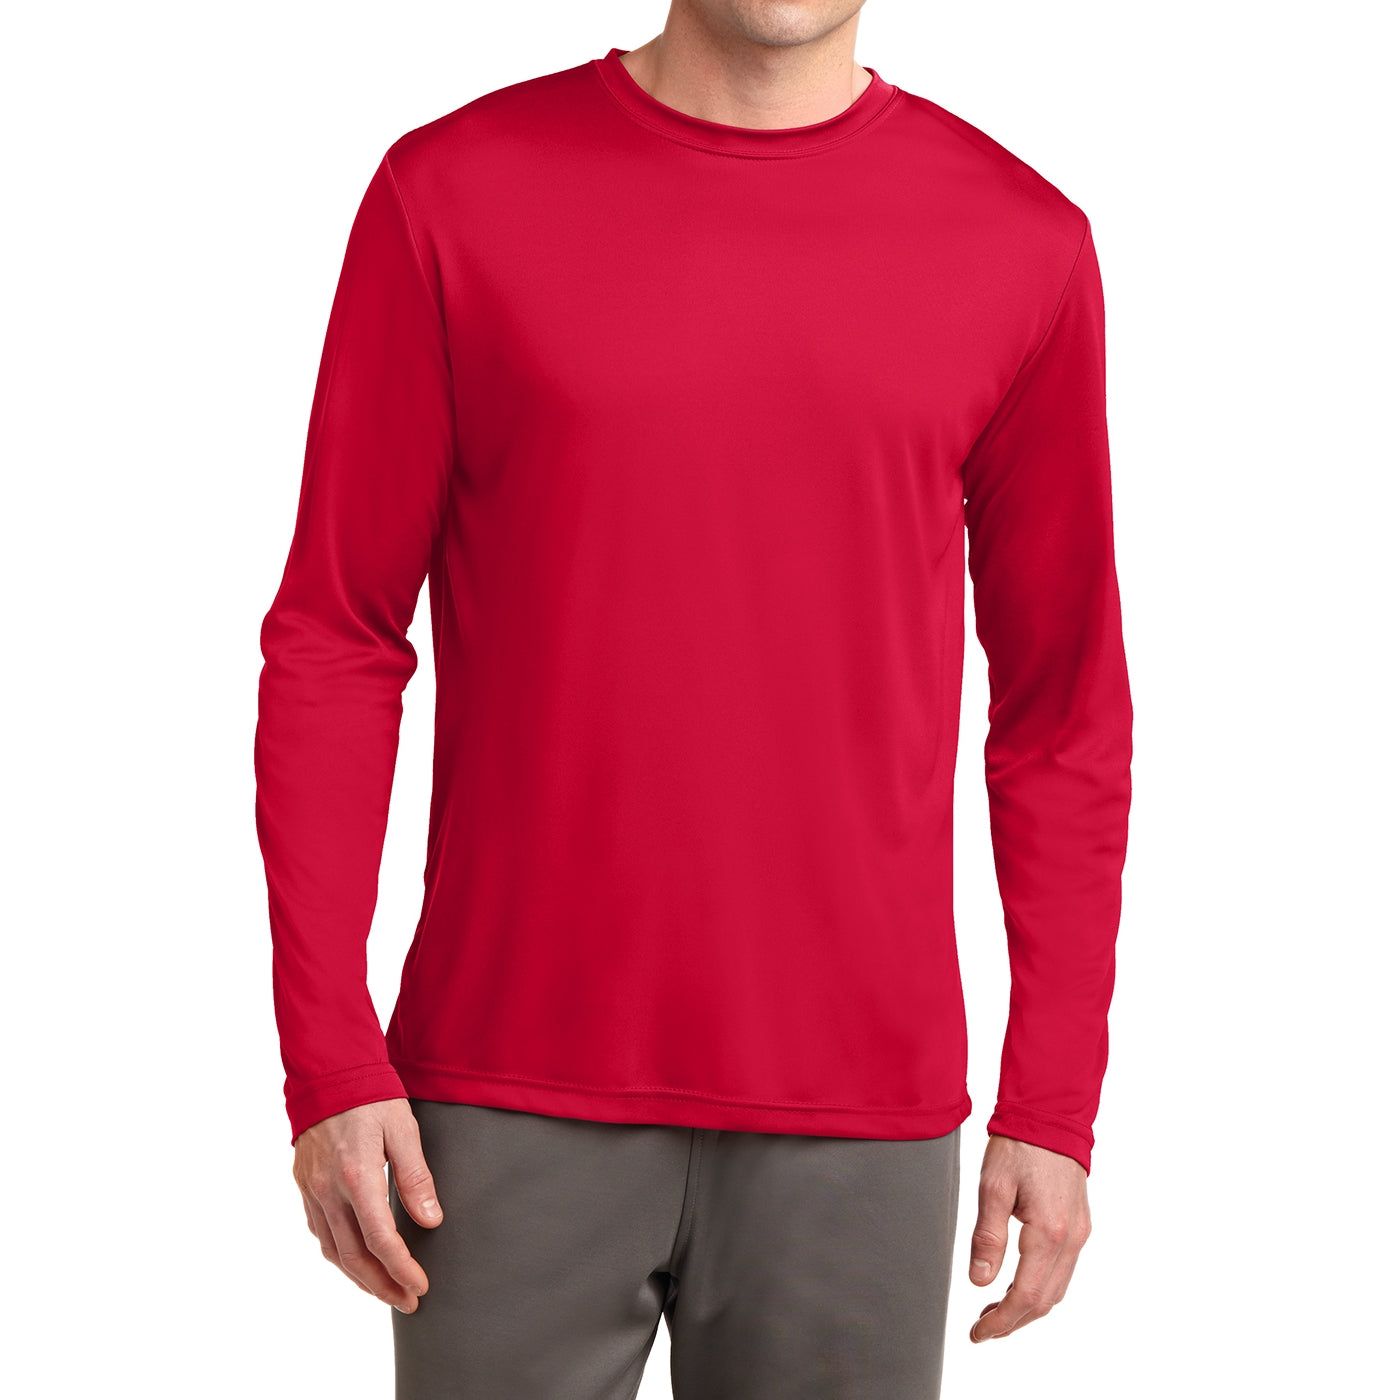 Men's Long Sleeve PosiCharge Competitor Tee - True Red